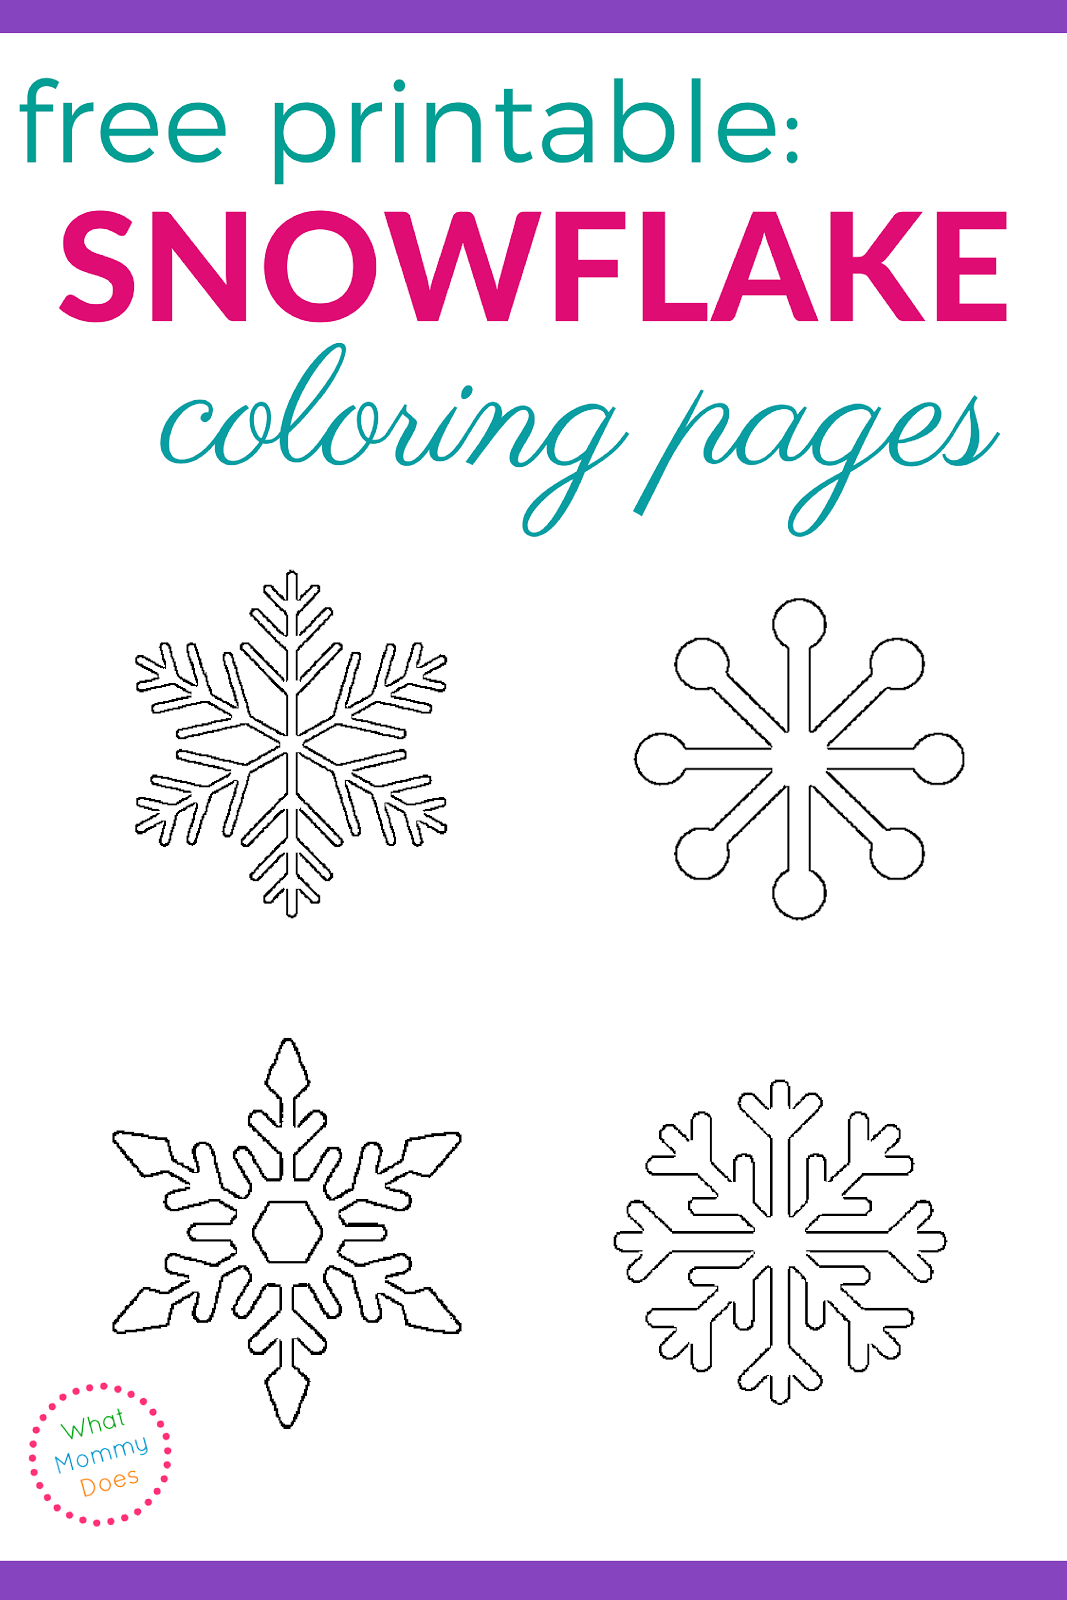 Massif image in free printable snowflakes